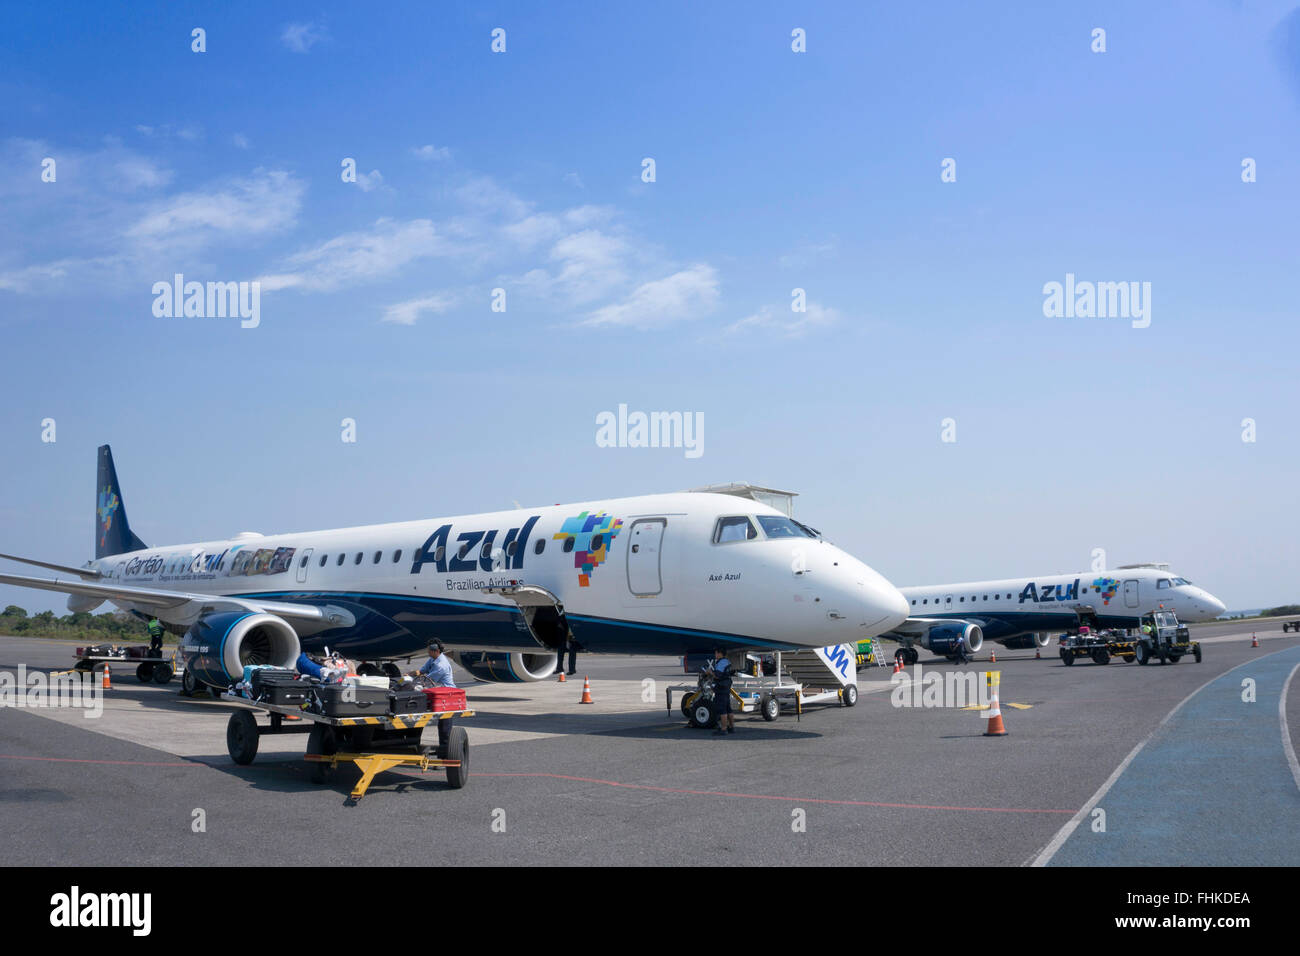 Azul Embraer jets on the runway at an airport in Brazil - Stock Image